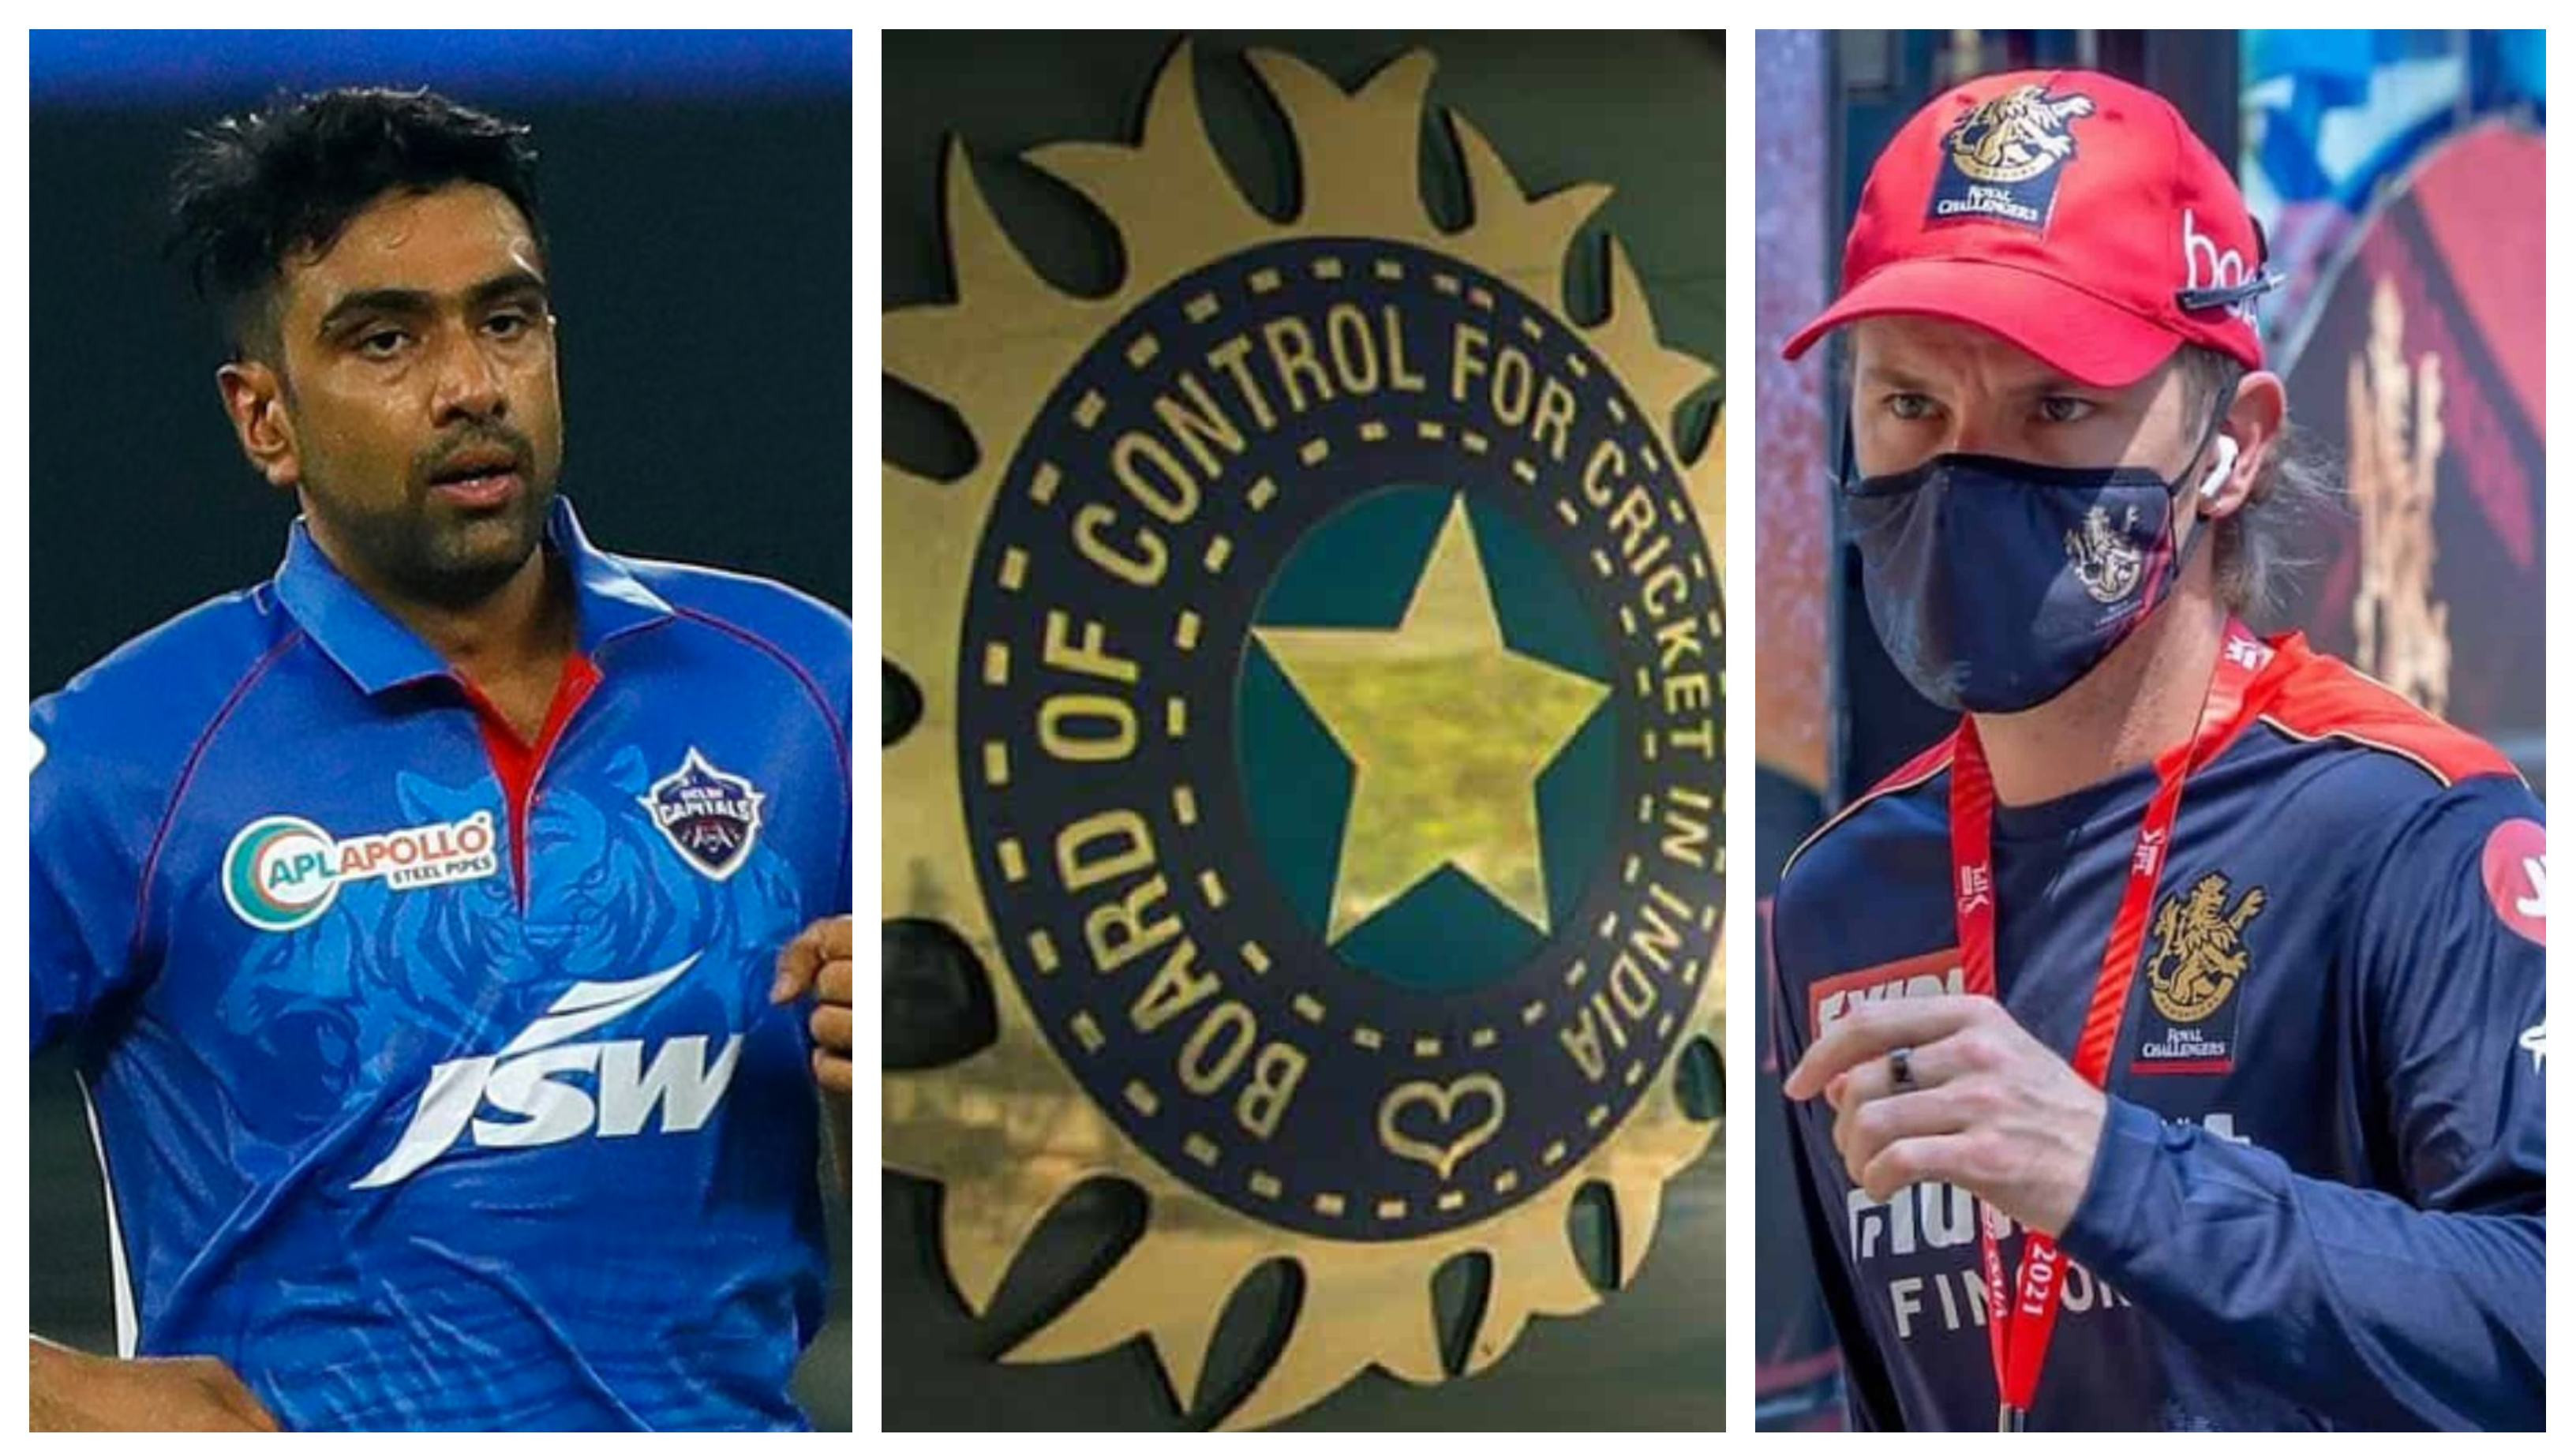 """IPL 2021: """"IPL is going ahead"""", says BCCI amid early exits by players as COVID cases surge in India"""